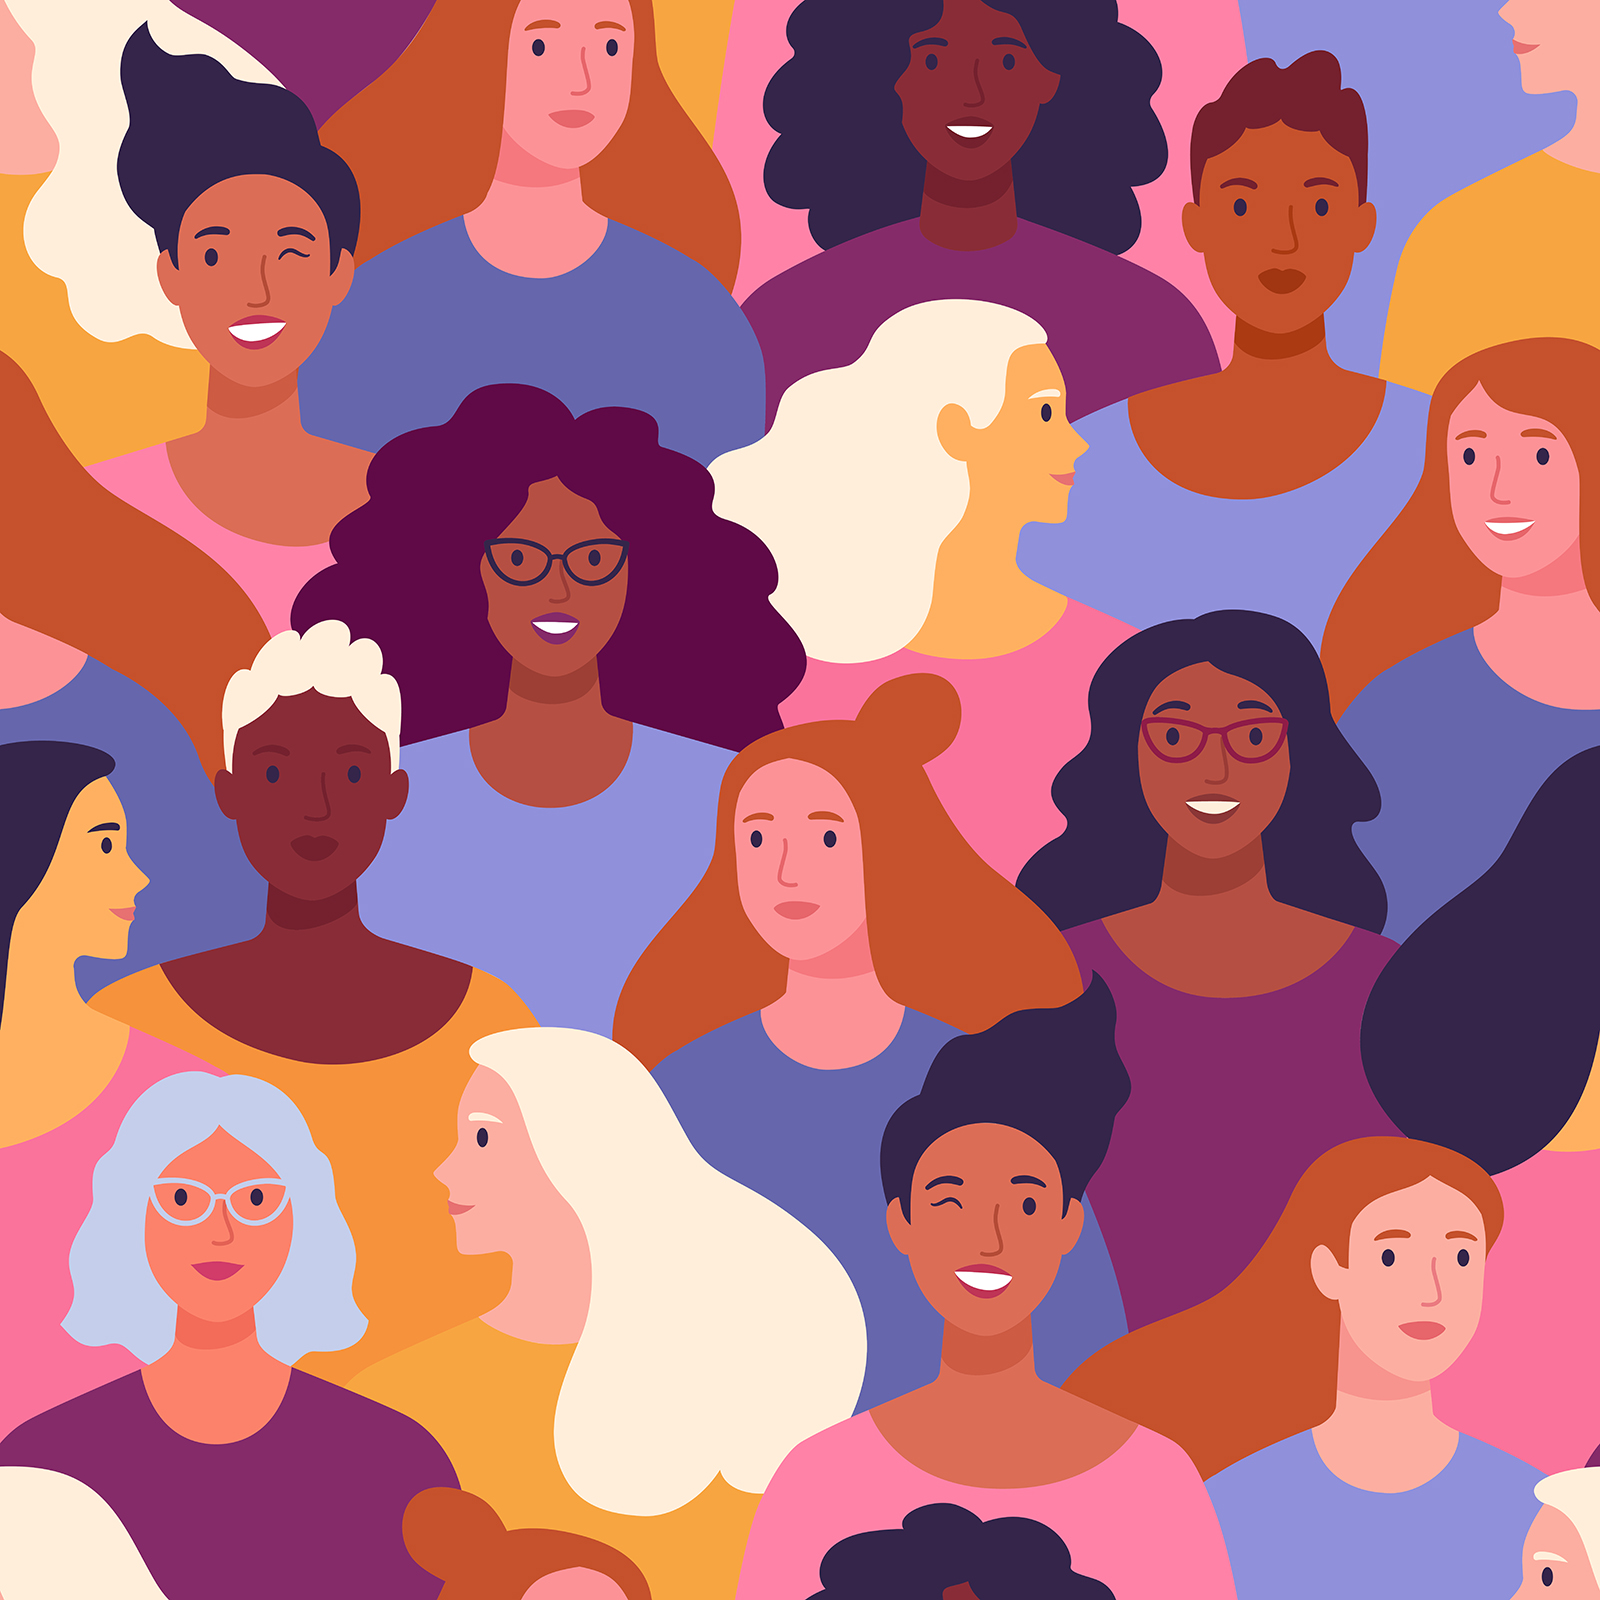 Women 2020: more prominent, more mobilized, and more demanding